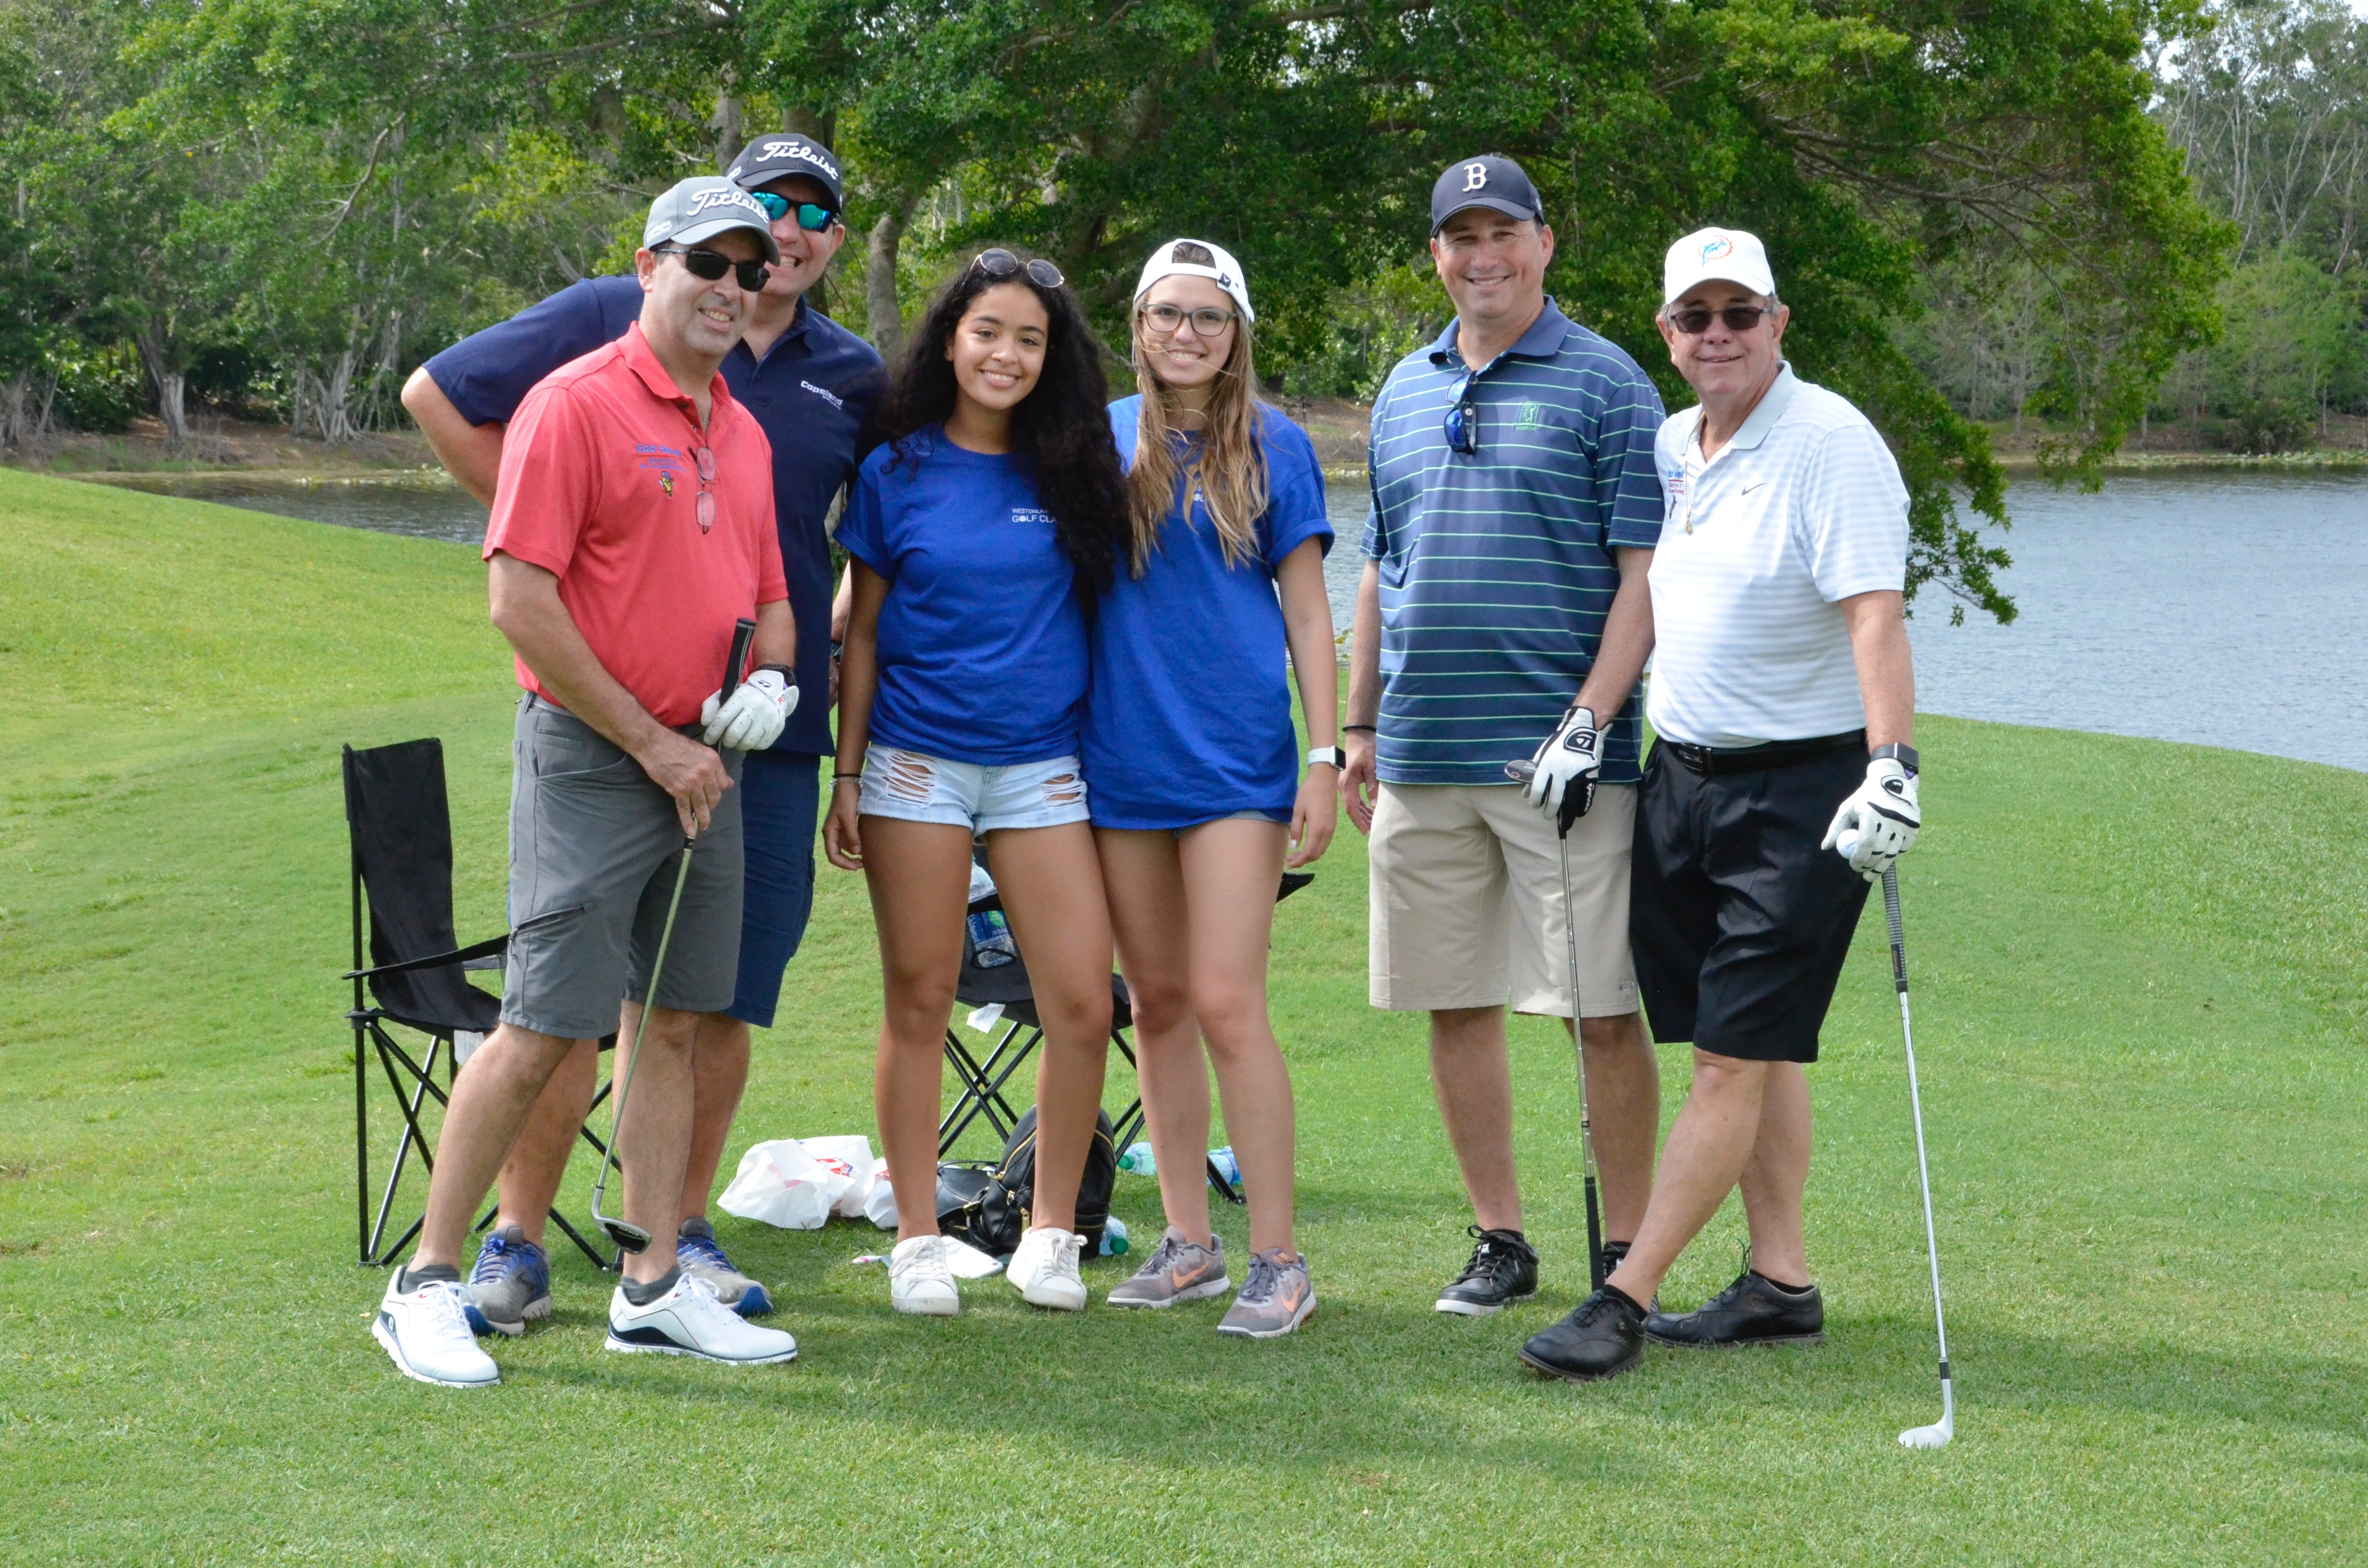 33rd Annual Rotary Golf Classic Sponsored by FHVLEGAL.COM gallery image #77